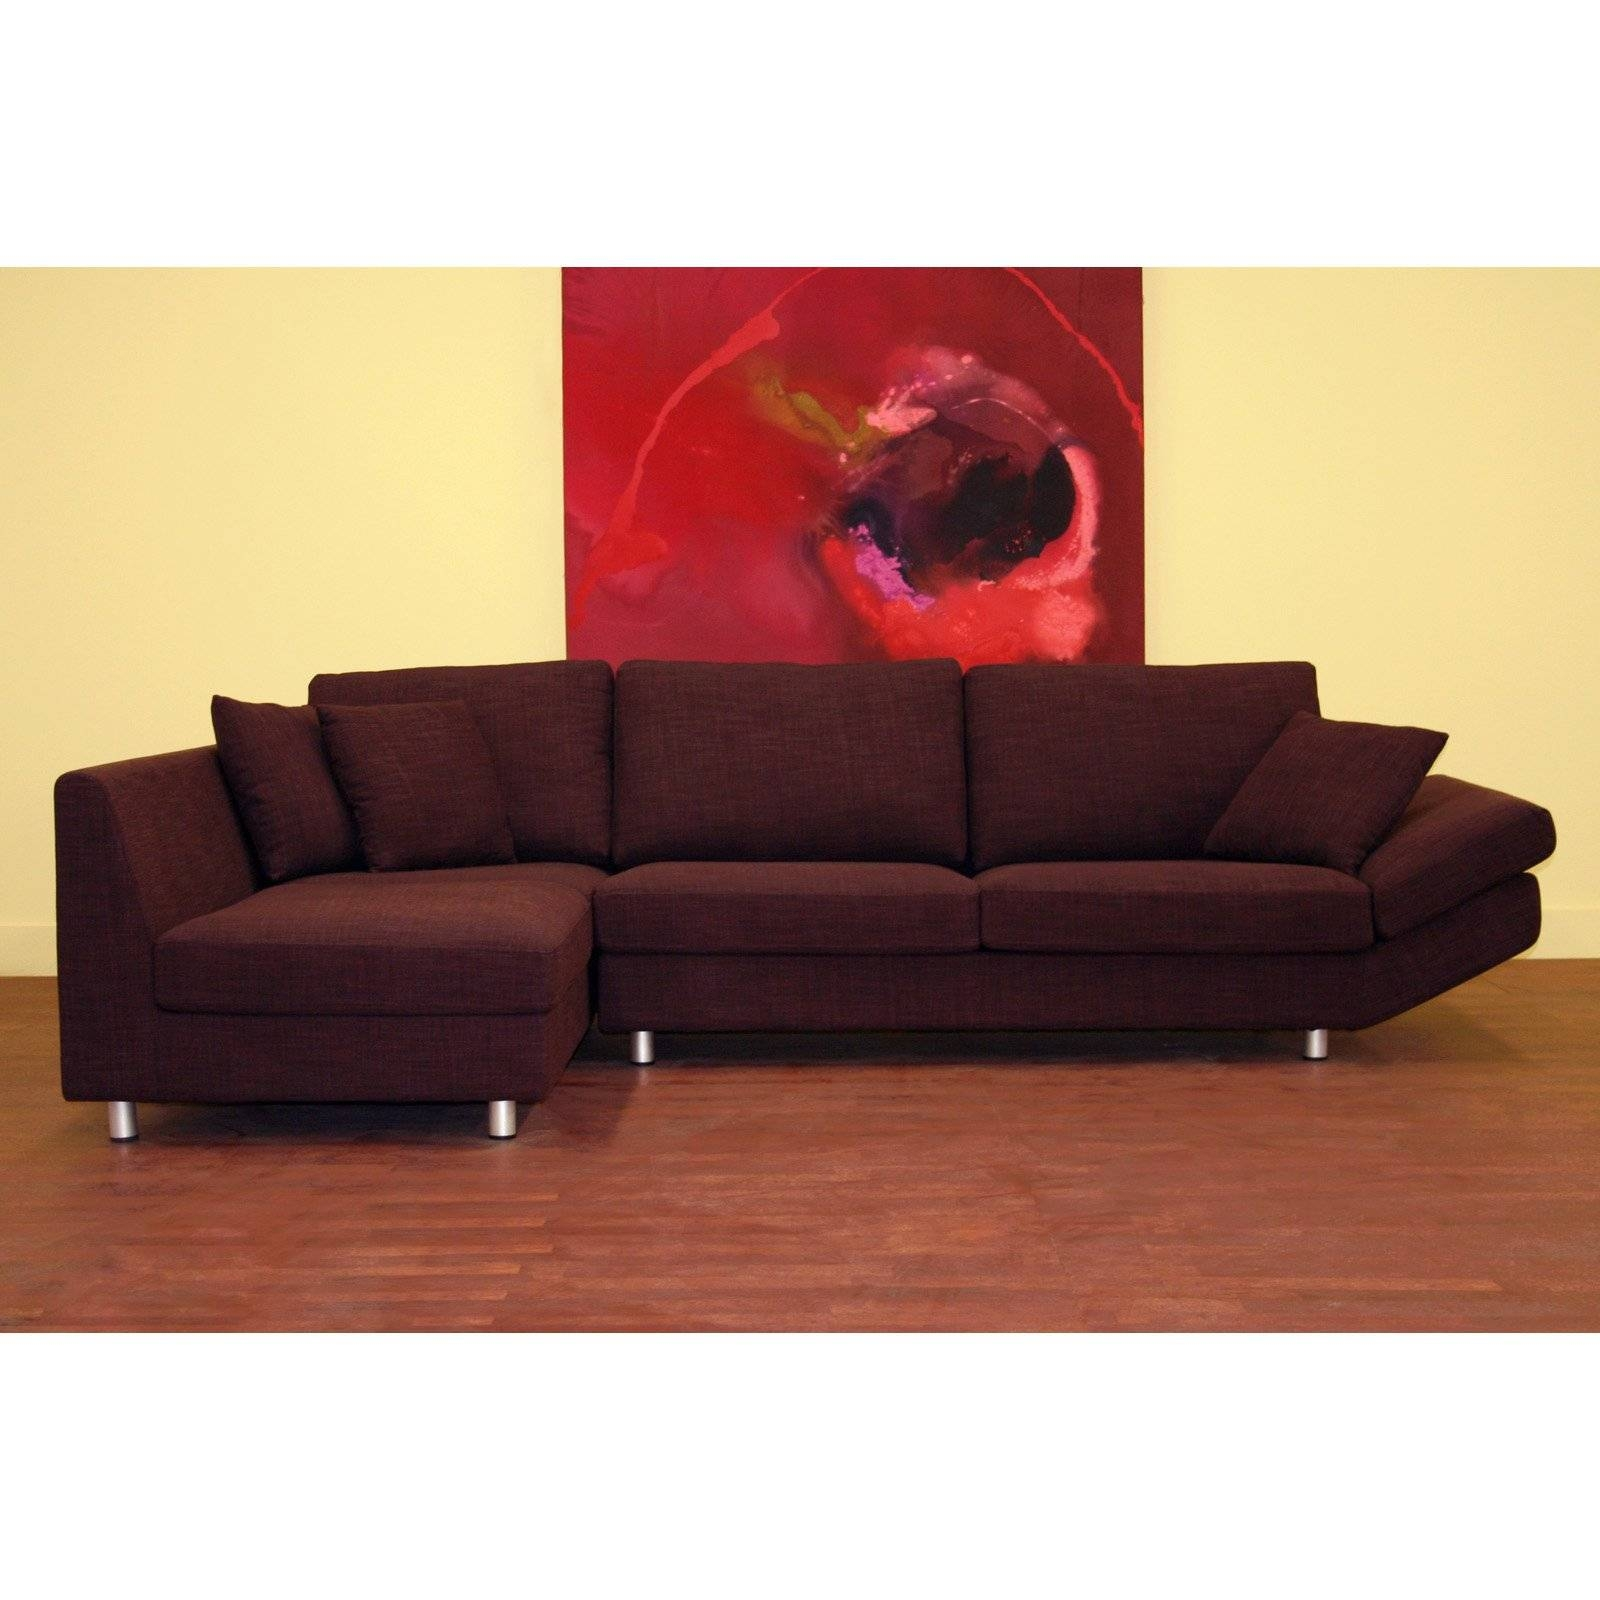 Bentley Sectional Leather Sofa - Leather Sectional Sofa with regard to Bentley Sectional Leather Sofa (Image 9 of 30)